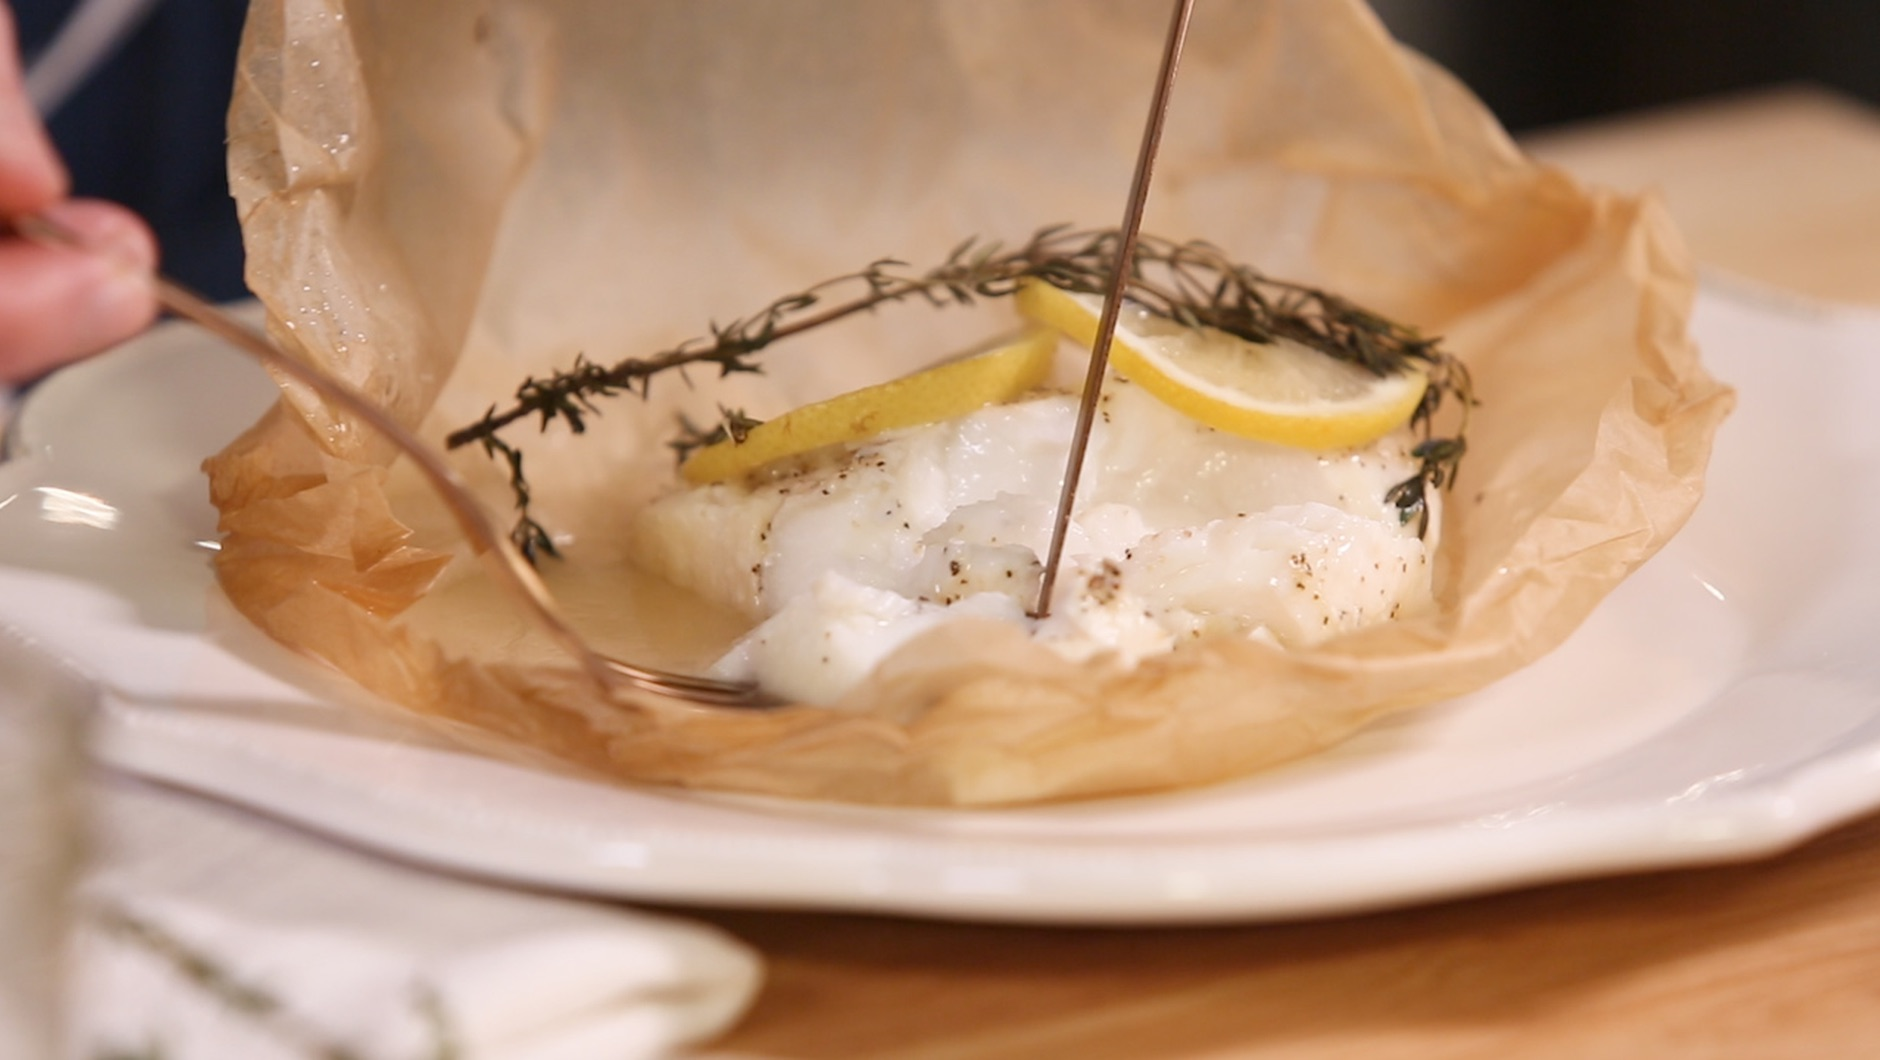 How to make fish en papillote what 39 s for dinner for How to make fish